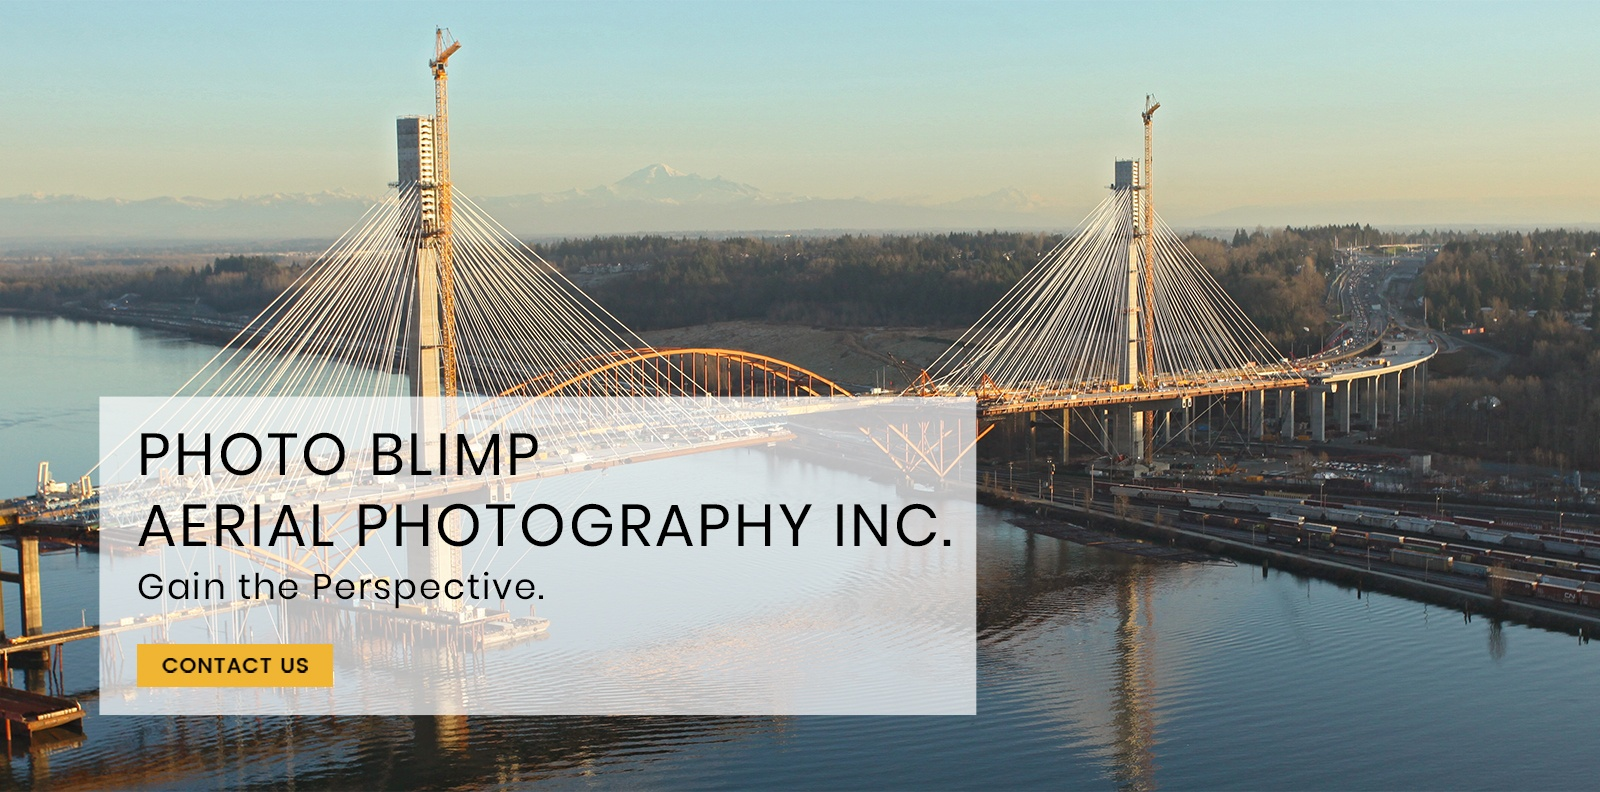 Photo Blimp Aerial Photography Inc.